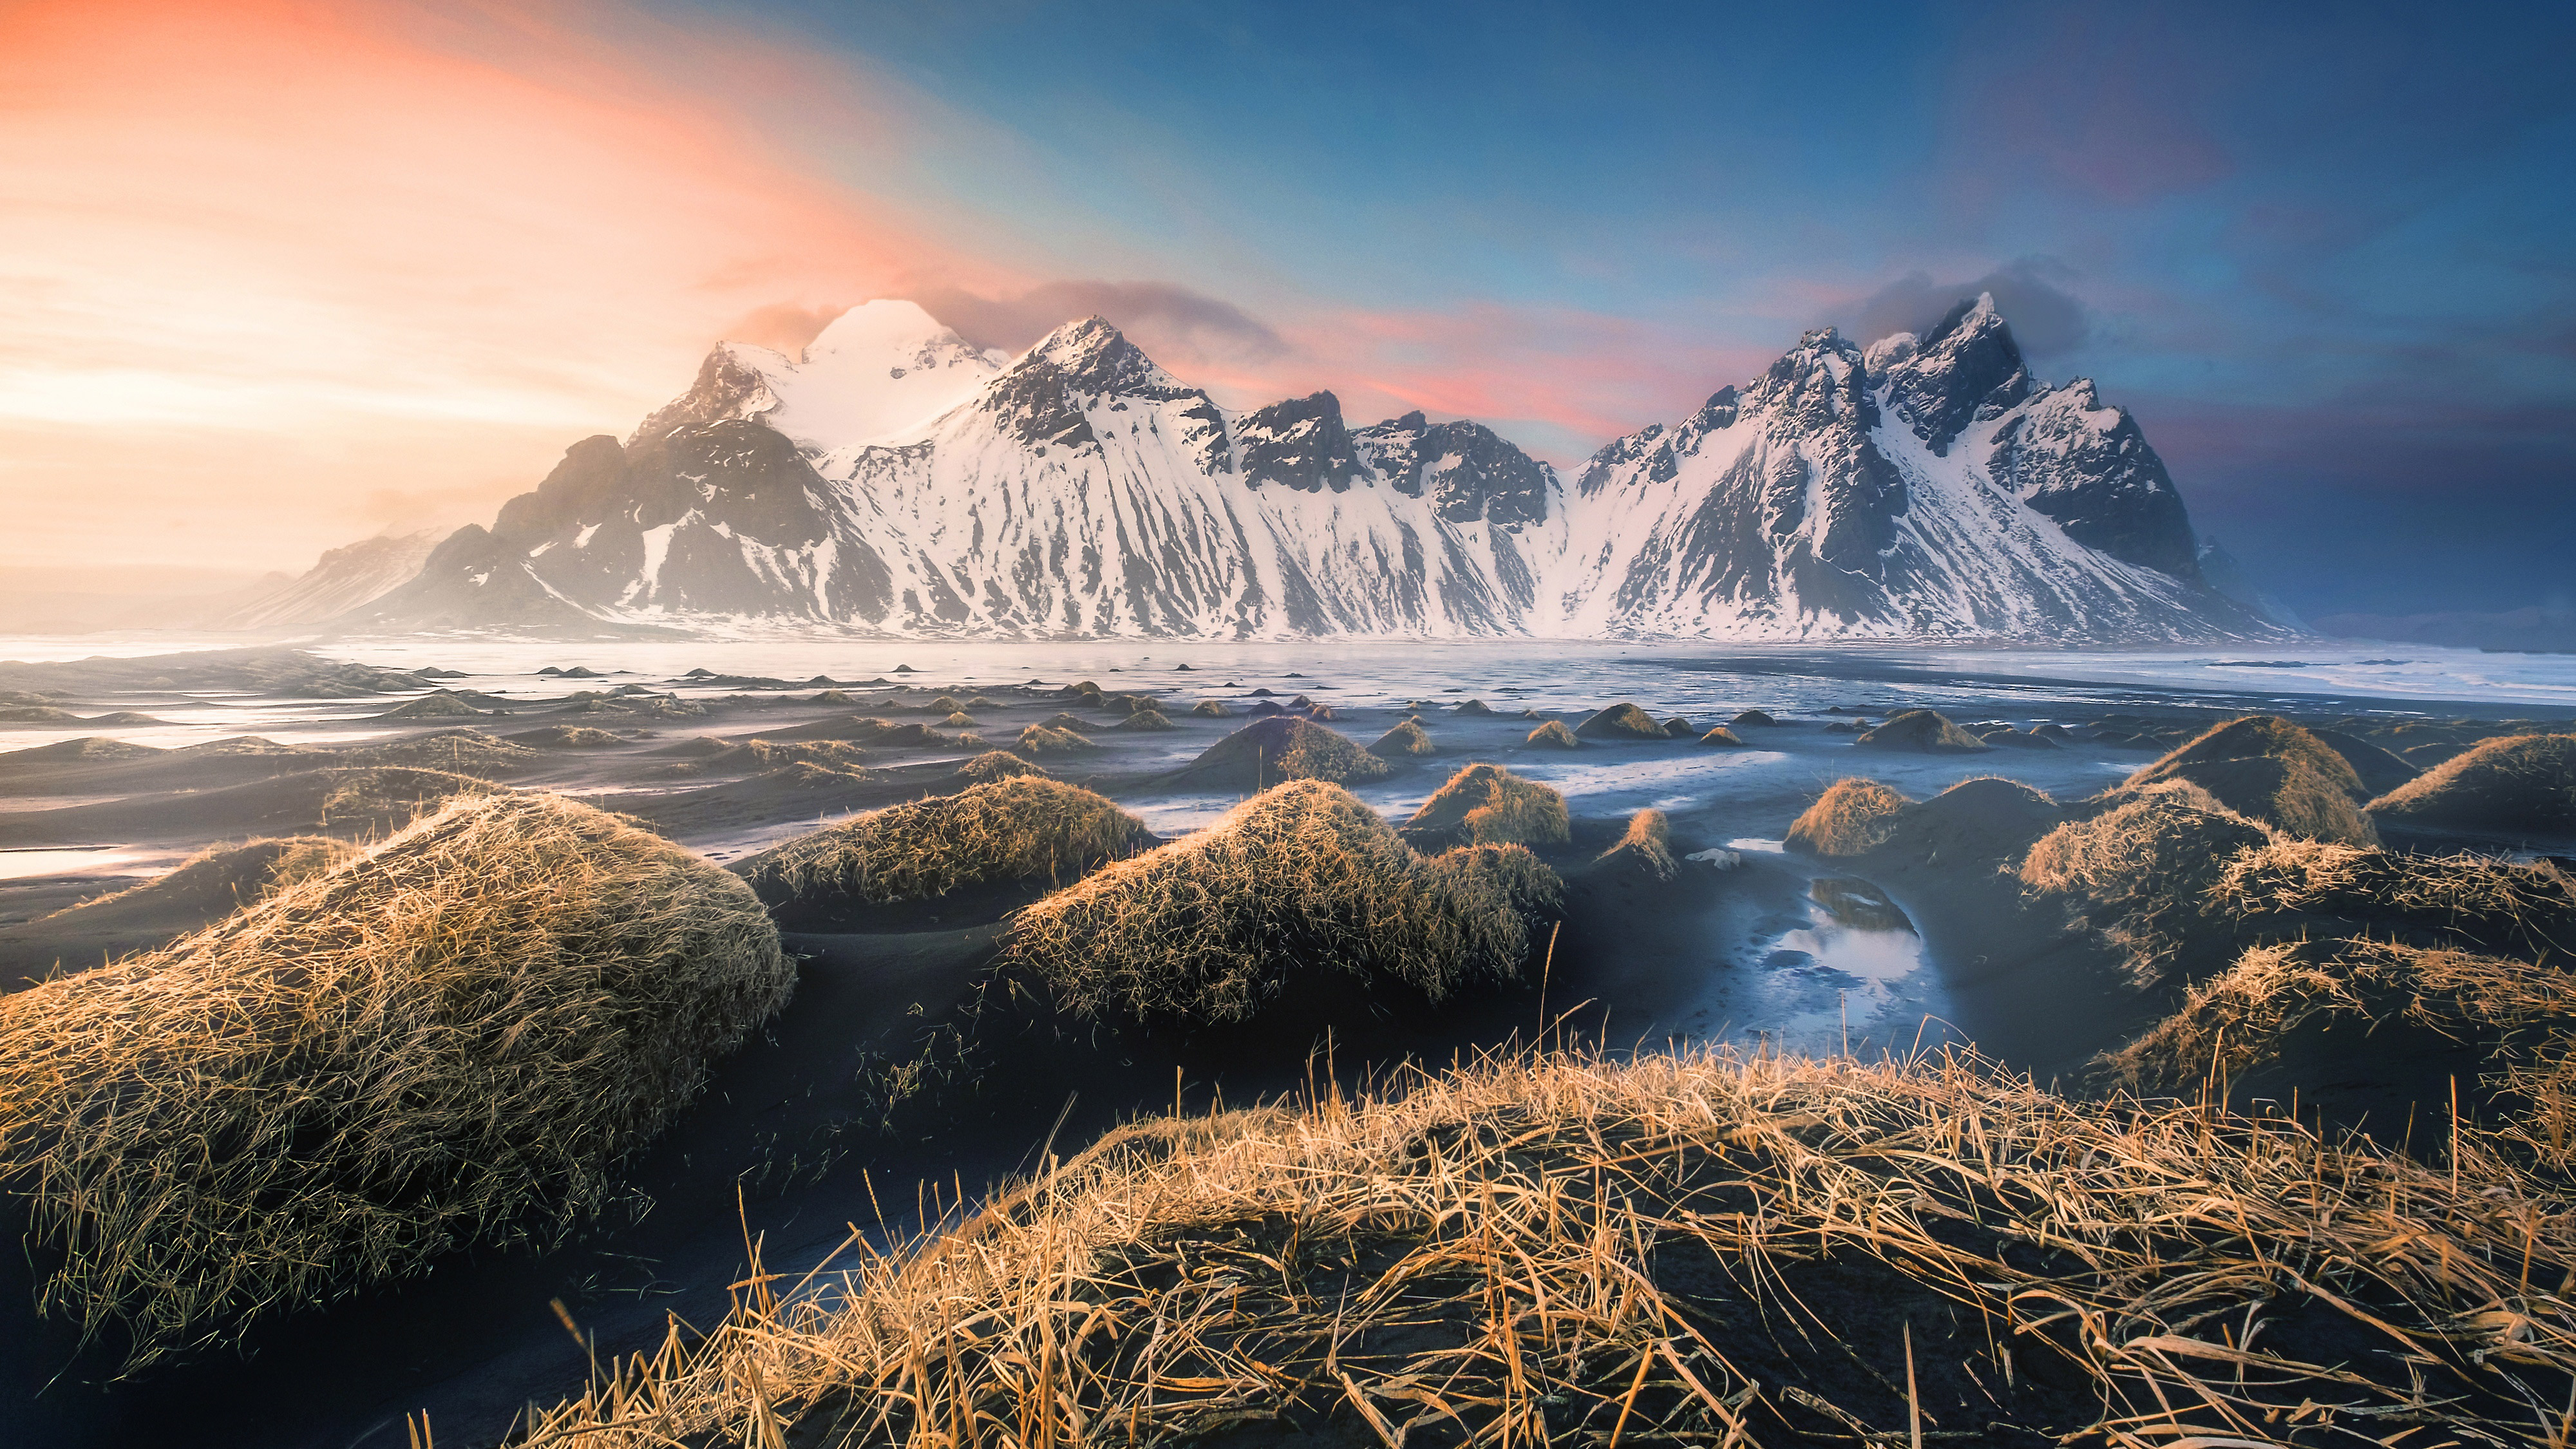 3d Wallpaper 800x1280 Mountains Iceland 4k Hd Nature 4k Wallpapers Images